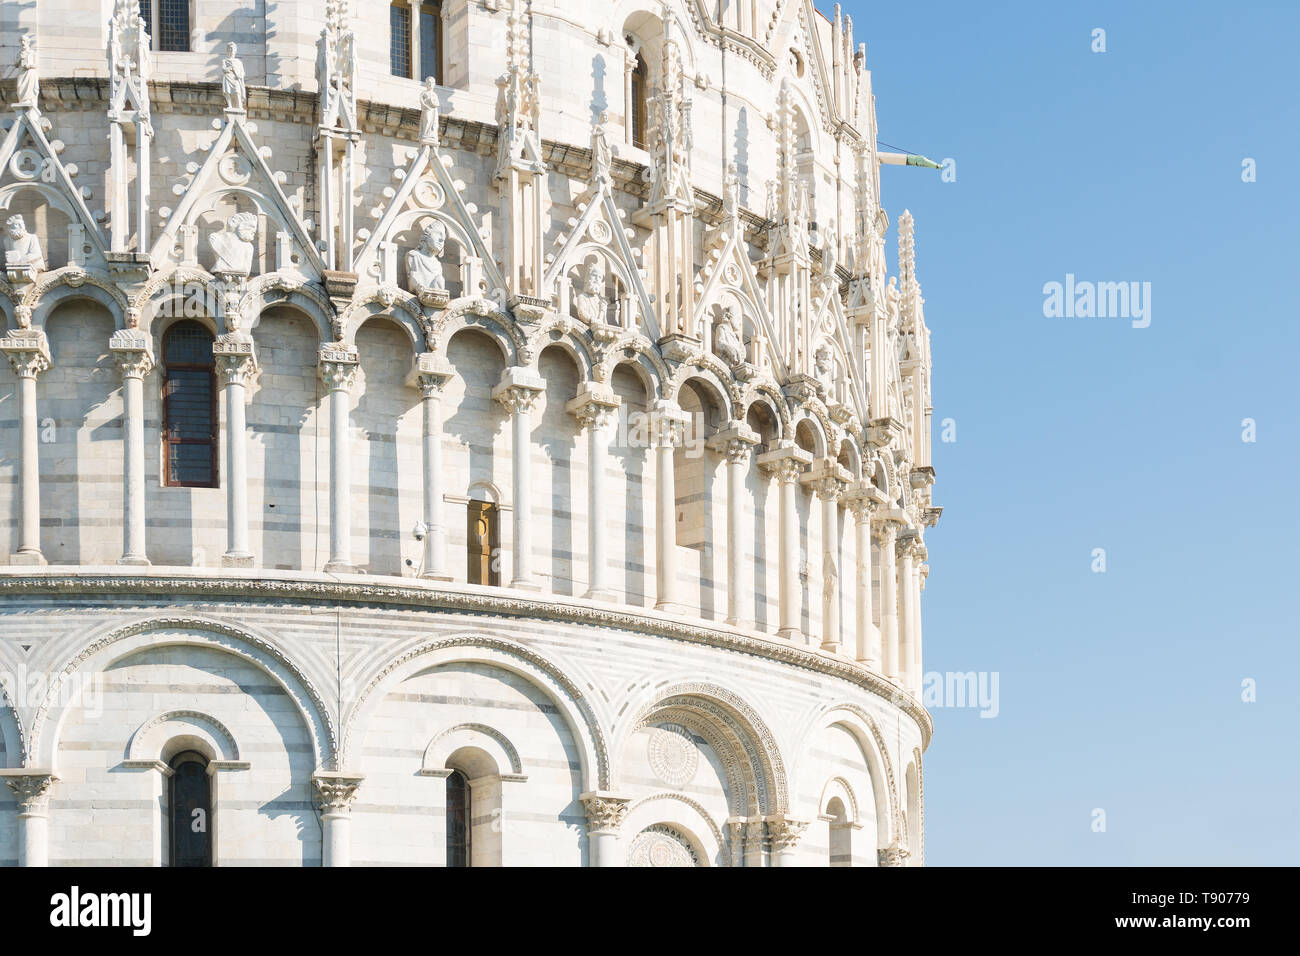 Pisa, Italy-October 21, 2018:particular of one of the symbolic places of Pisa during a sunny day - Stock Image